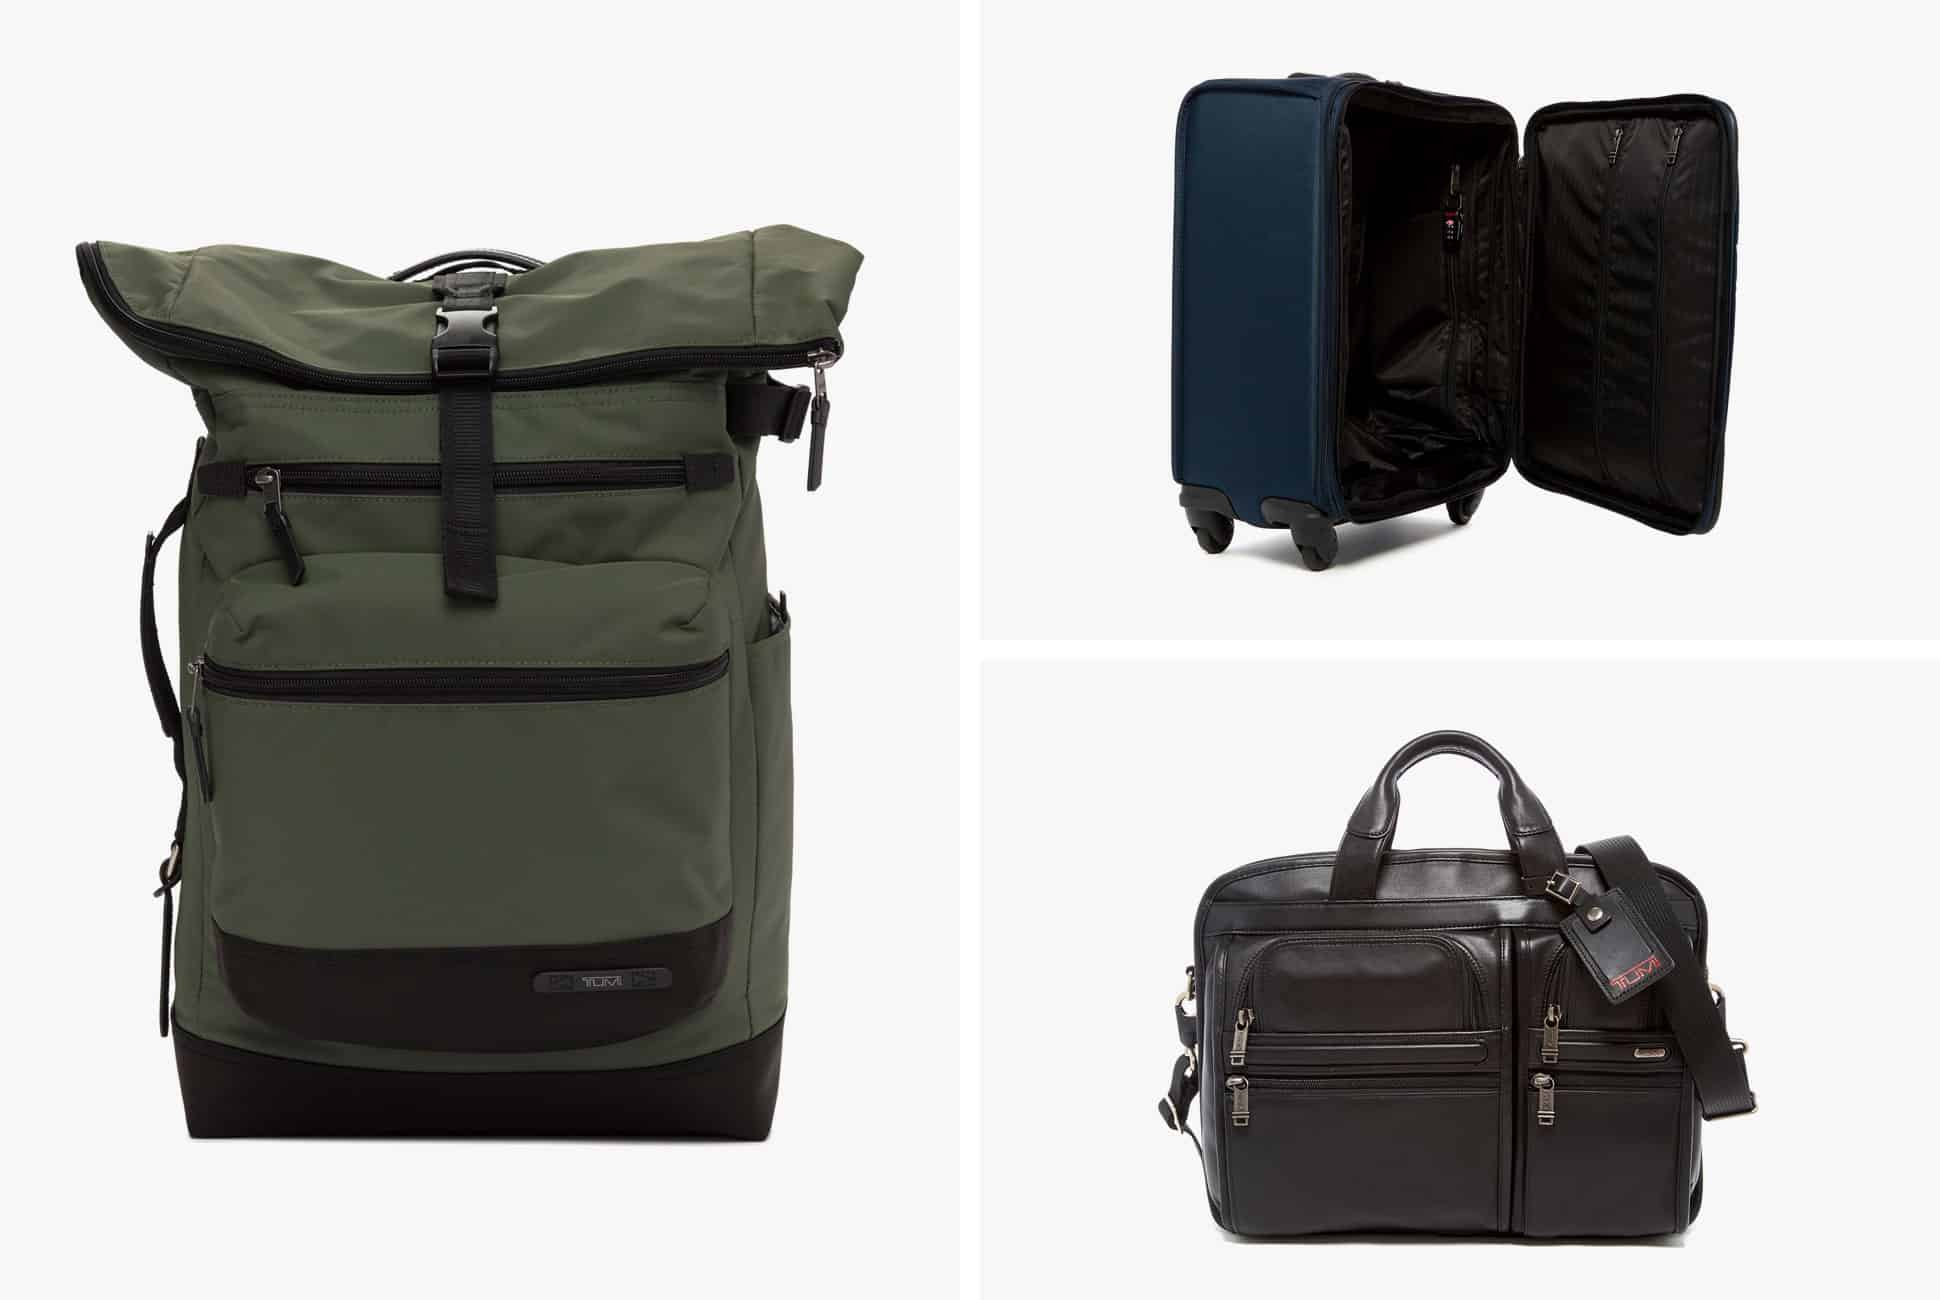 c5f2bc70980 Refresh Your Luggage With This Massive Tumi Sale Save up to 40%  Need a  luggage refresh  You re in luck  Nordstrom Rack is offering an insane  amount of Tumi ...